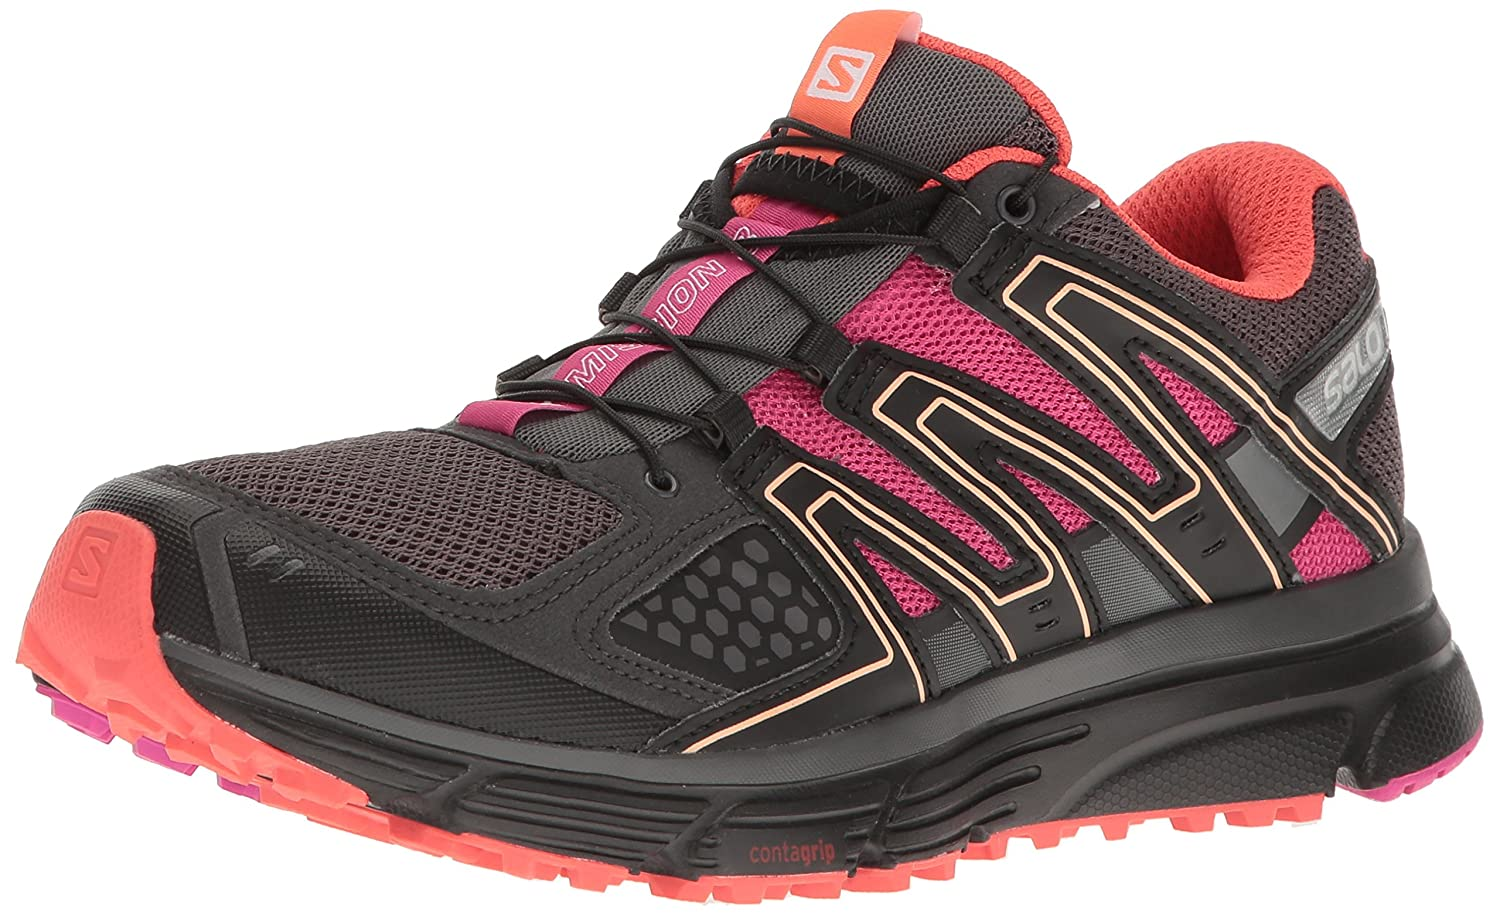 Salomon Women's X-Mission 3 W-w B01HD21N4O 9 B(M) US|Magnet/Black/Rose Violet